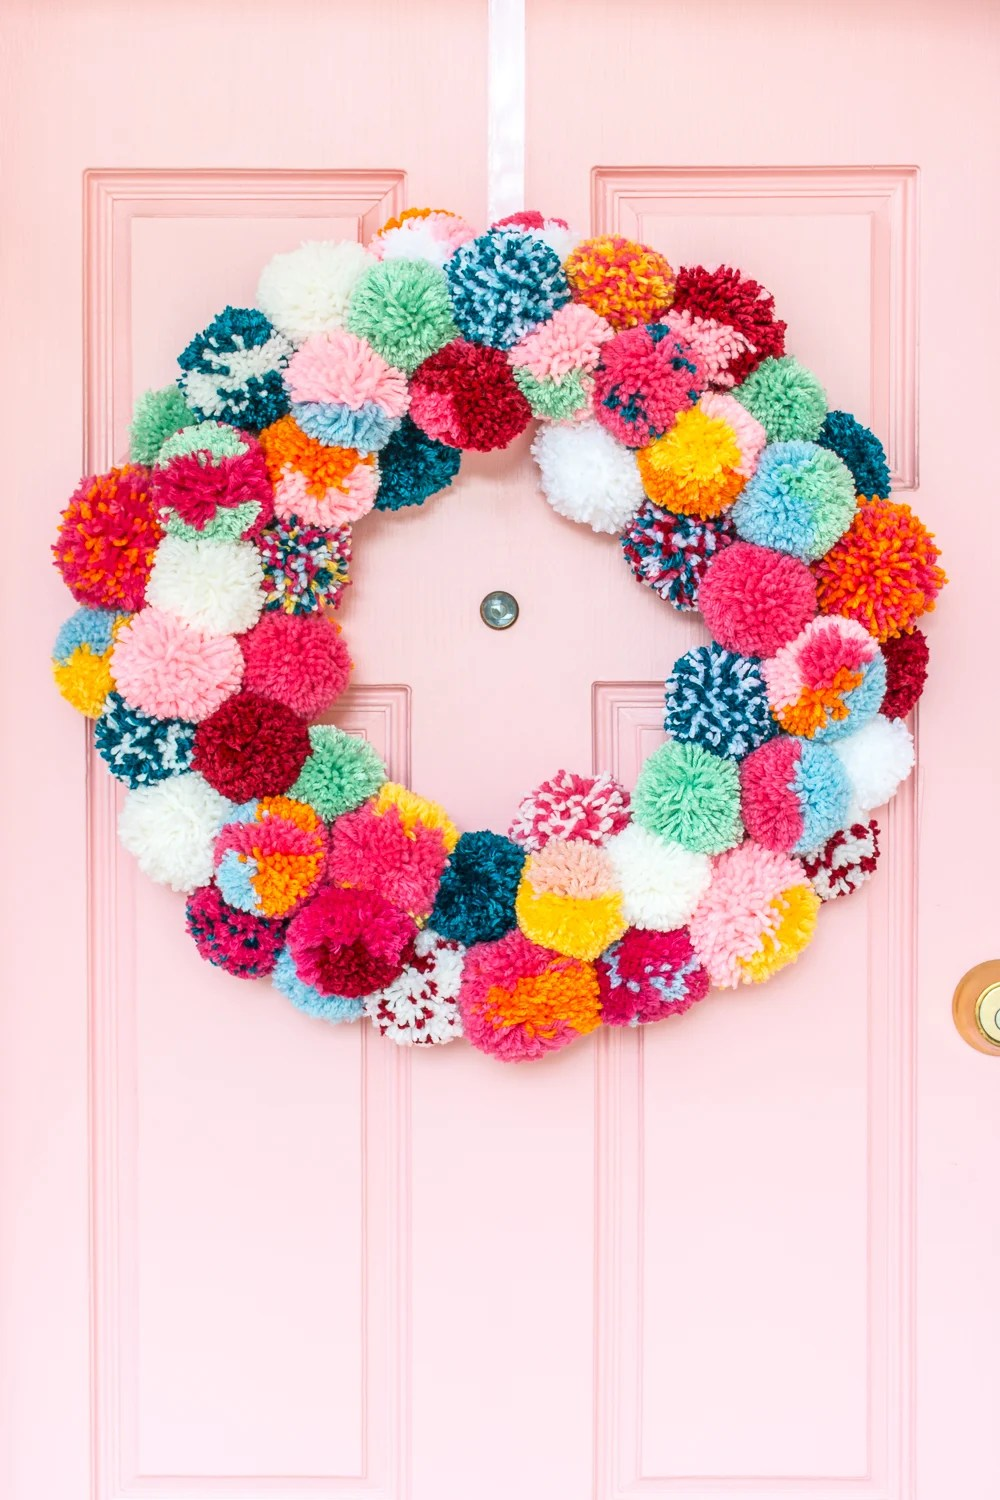 Bright and colorful DIY boho holiday pom-pom wreath